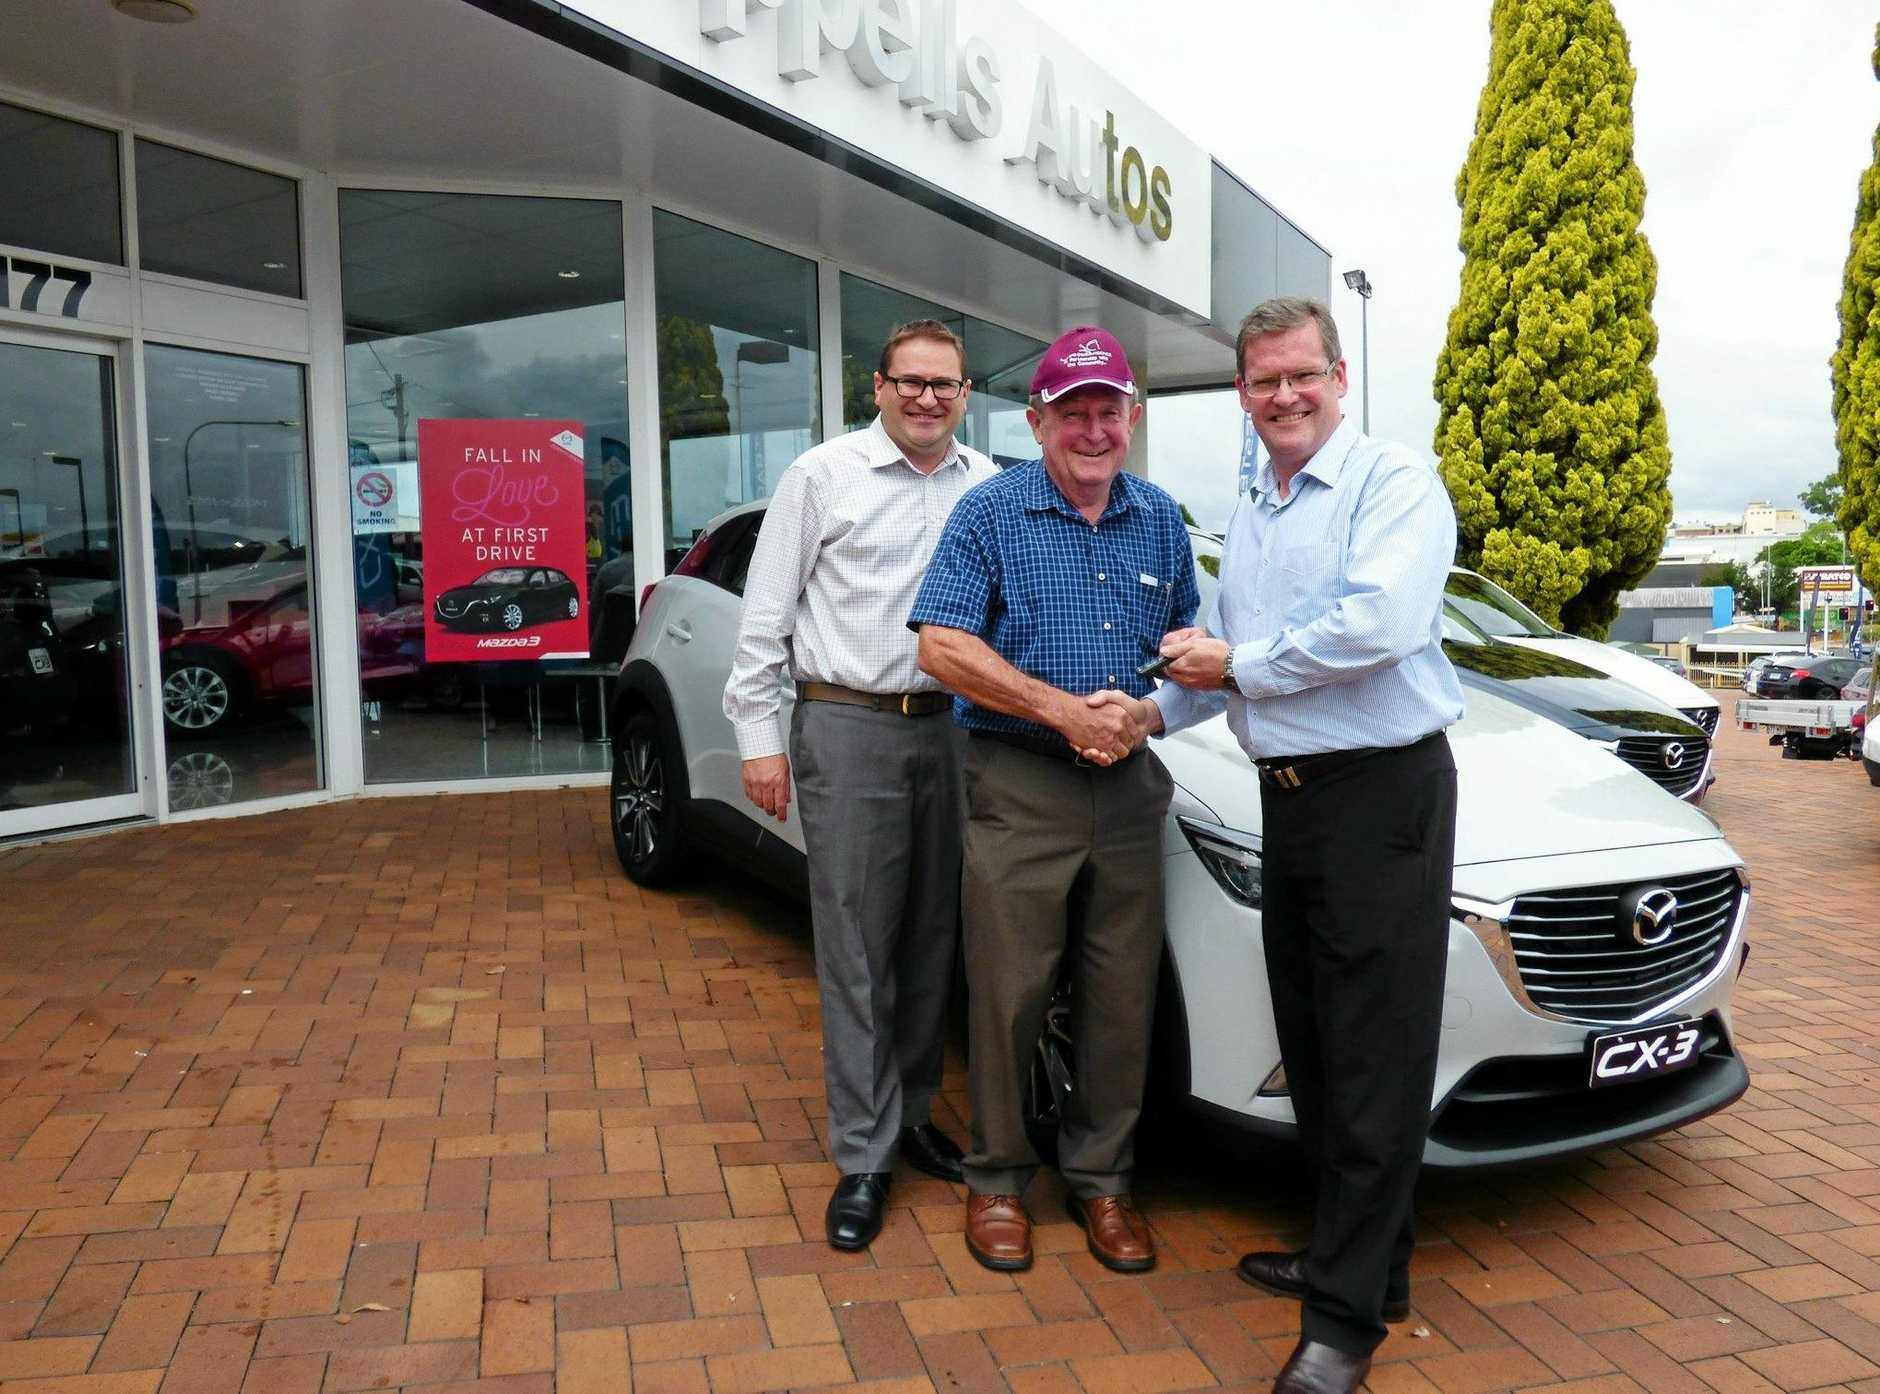 Wippells Autos dealer principal David Russell (left), Toowoomba Hospice chairman Graham Barron and Member for Toowoomba South John McVeigh MP check out the Hospice's new car thanks to a $25,000 grant.